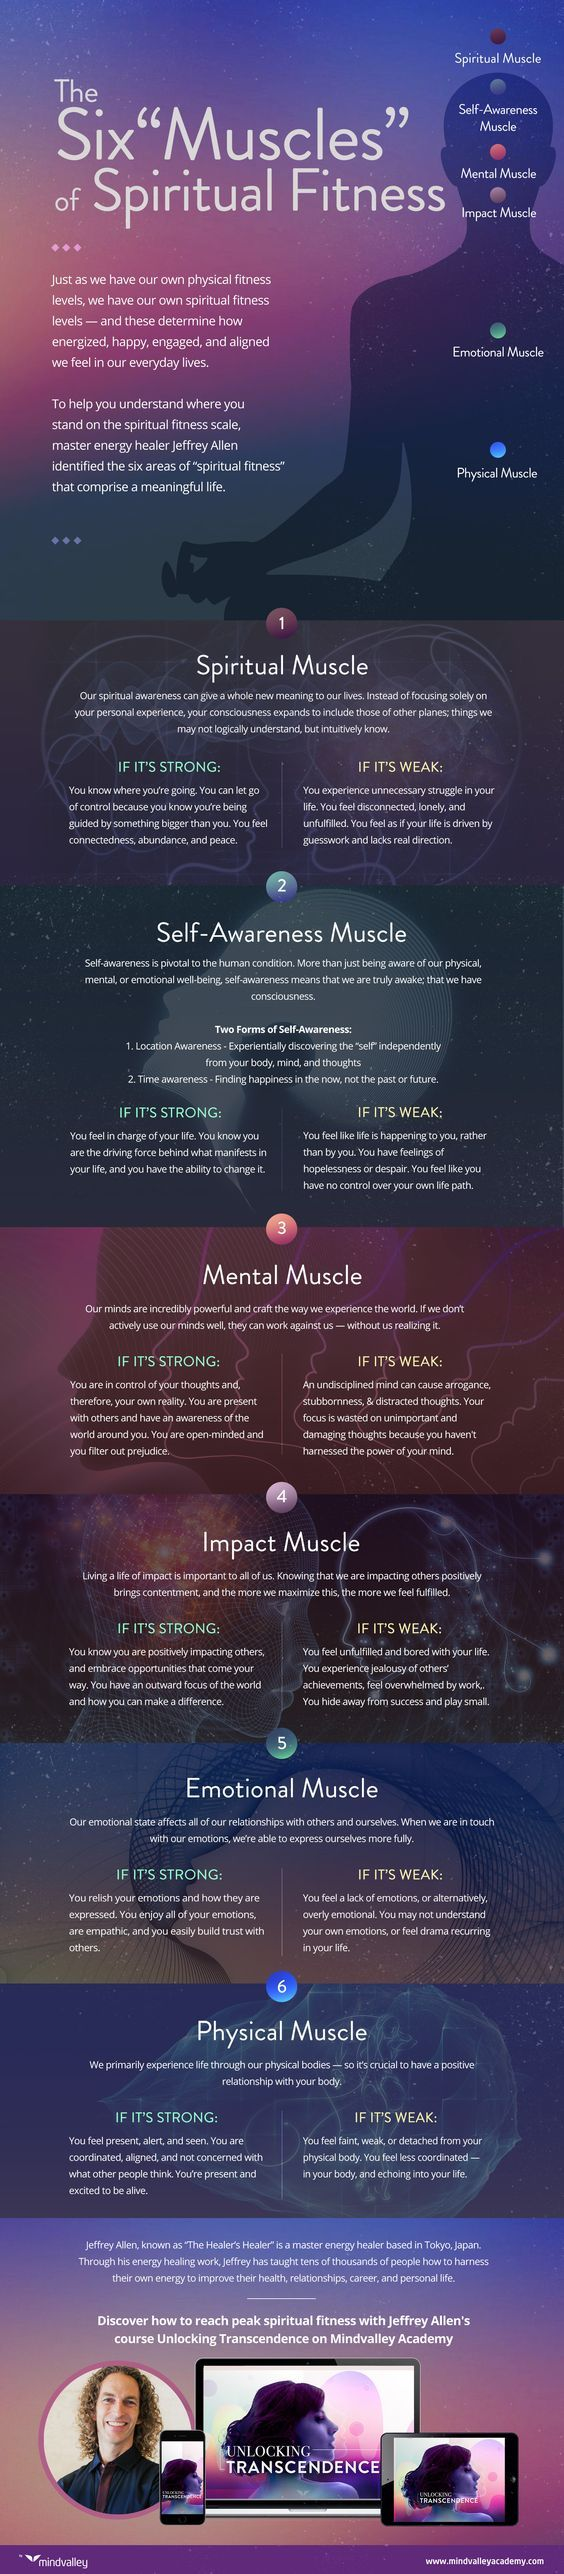 Guide on how you can boost your six muscles for greater spiritual health.